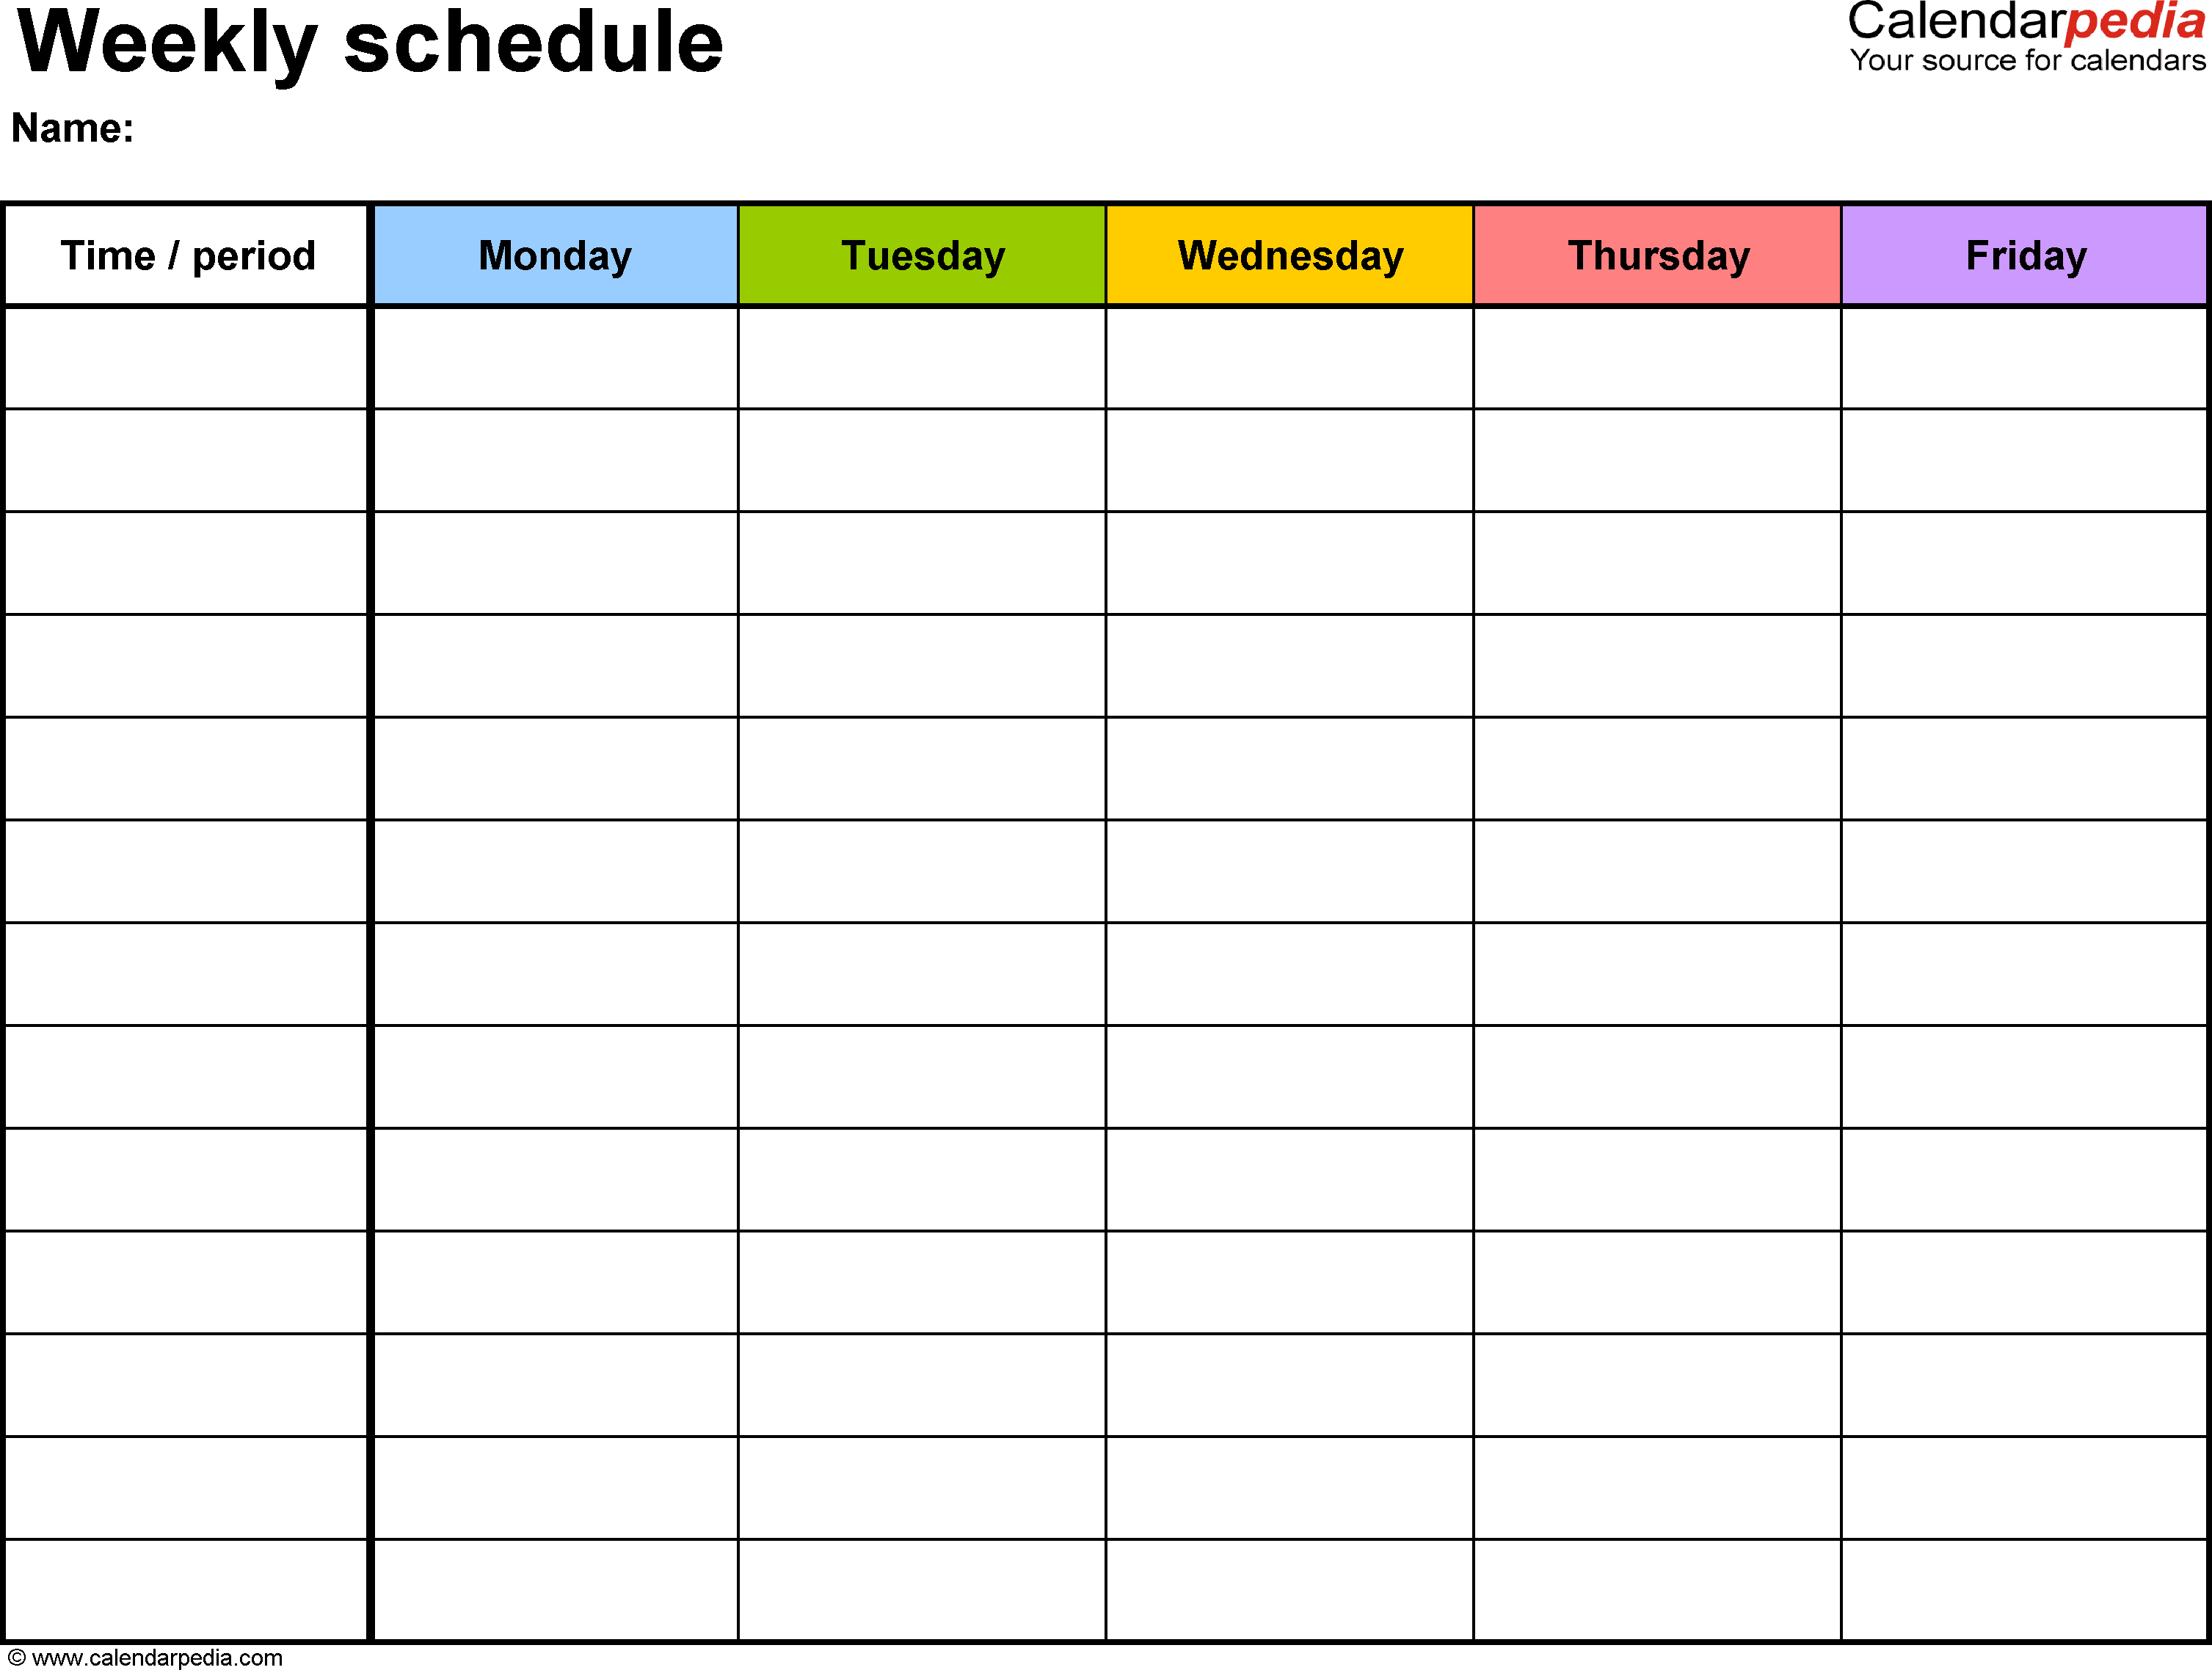 Printable Weekly Calendar Monday Through Friday - Wpa.wpart.co